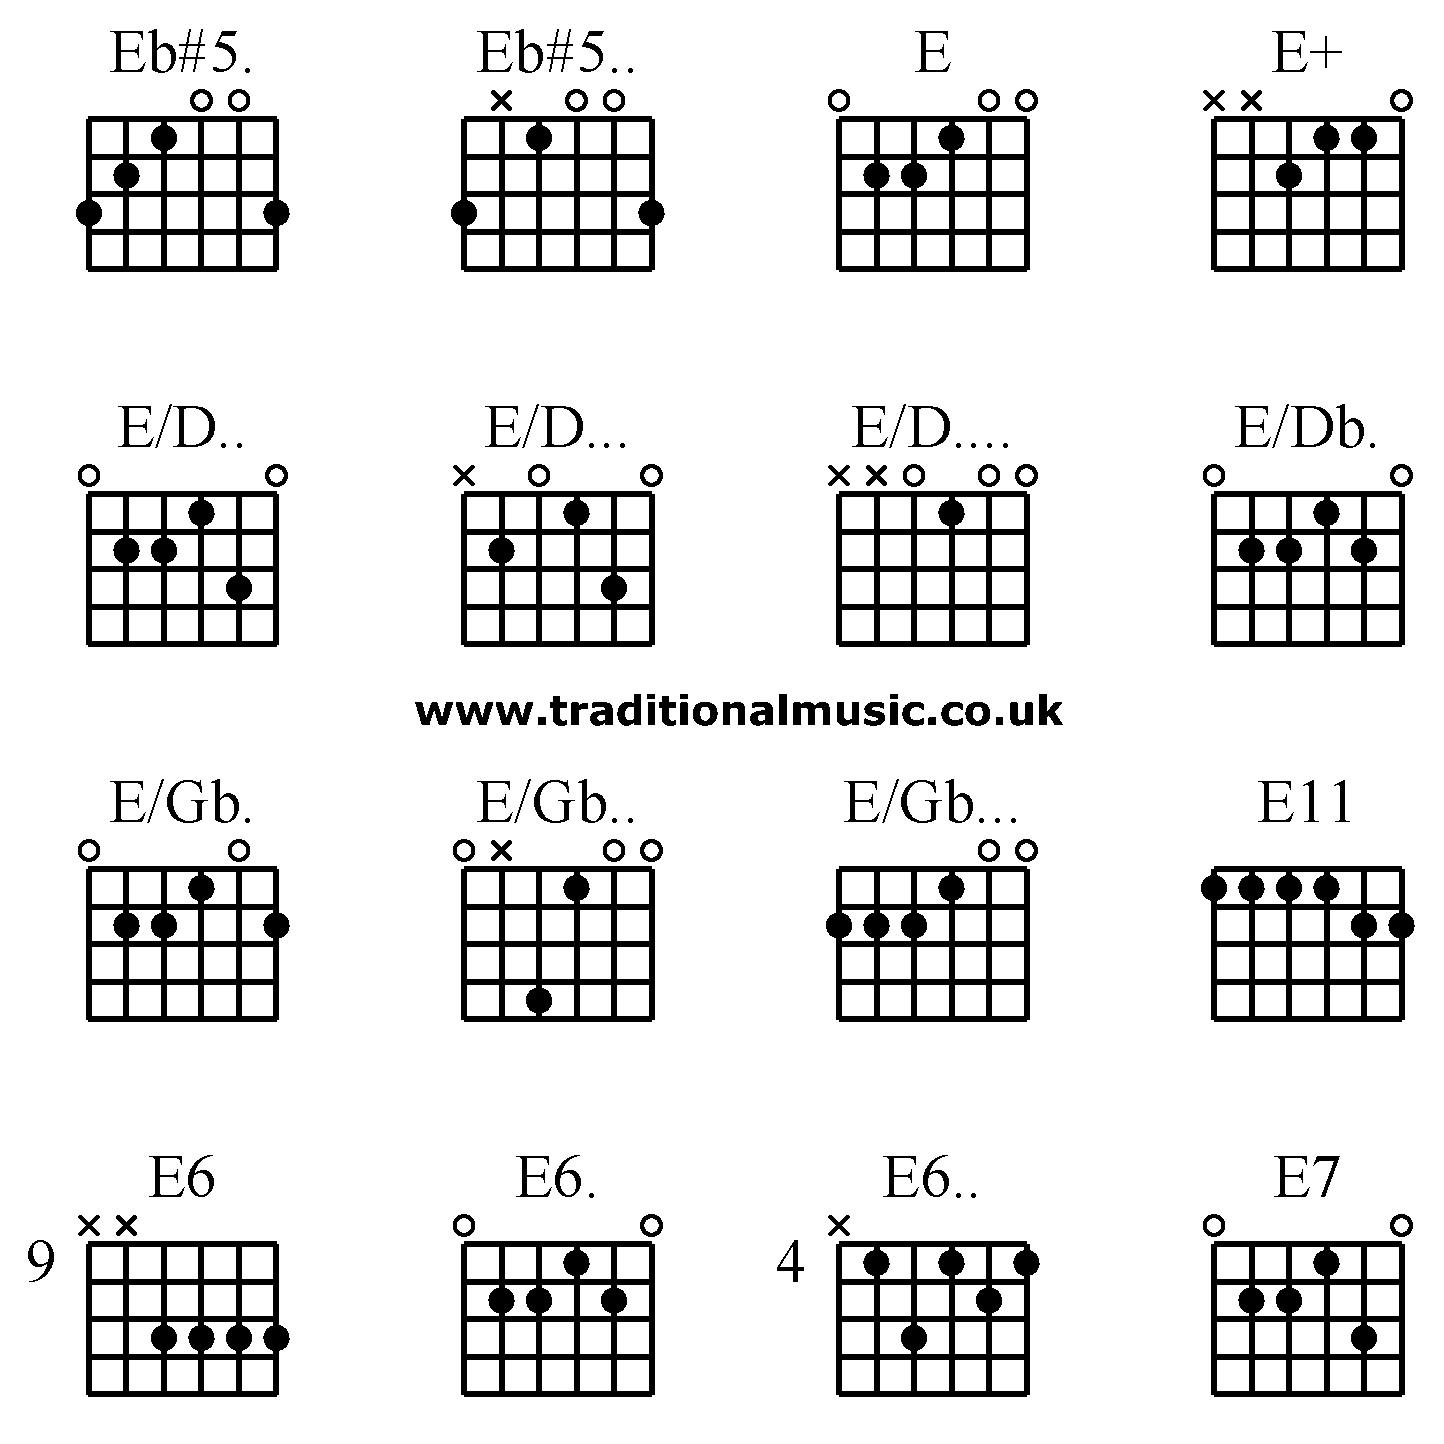 Guitar chords advanced - Eb#5. Eb#5. E E+ E/D. E/D. E/D. E/Db. E/Gb. E/Gb. E/Gb. E11 E6 E6. E6. E7